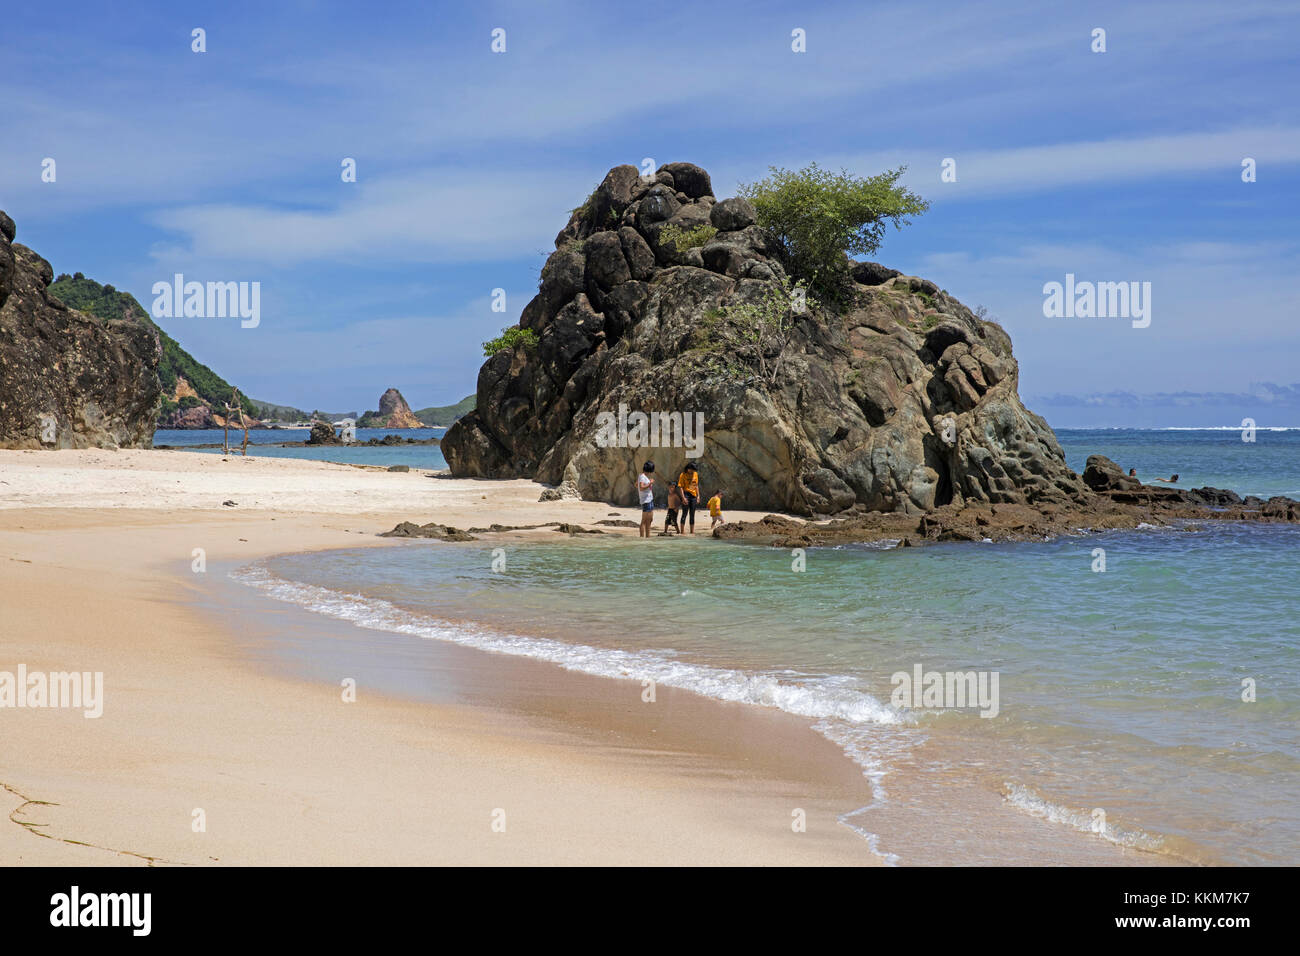 Indonesian children playing on white sandy beach at Kuta on the island Lombok, Lesser Sunda Islands, Indonesia - Stock Image